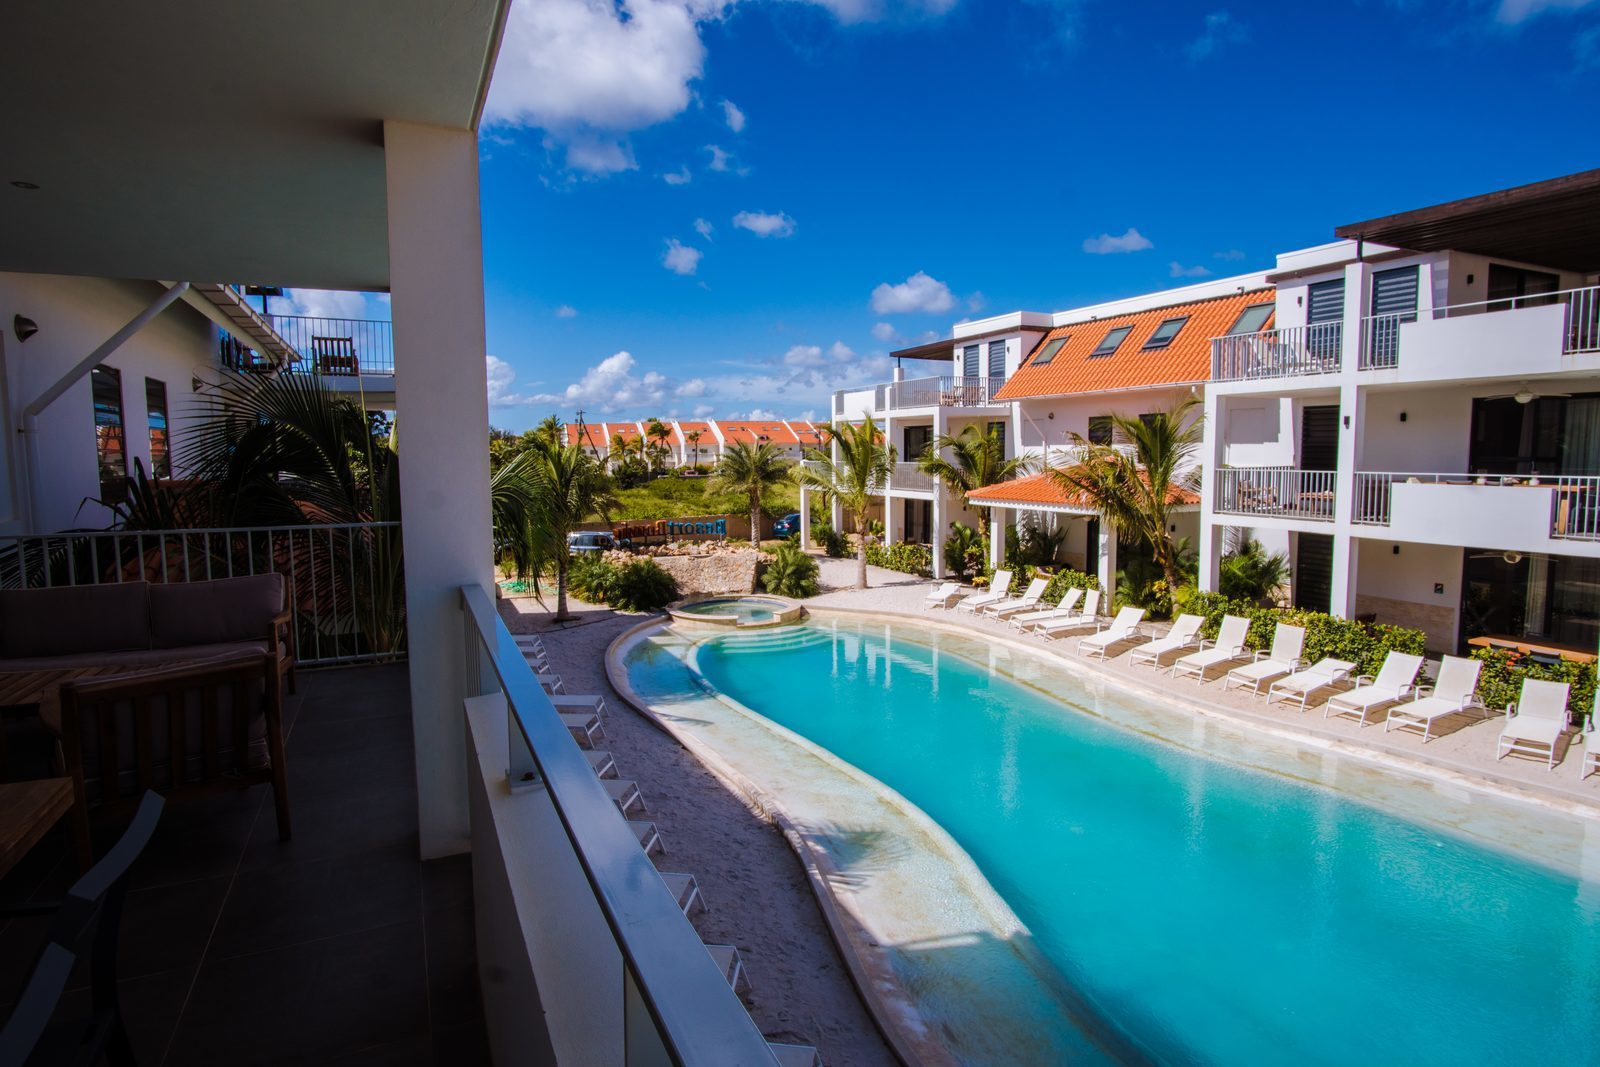 Every one of Resort Bonaire's apartments has a terrace, from which you have a view of the swimming pool.